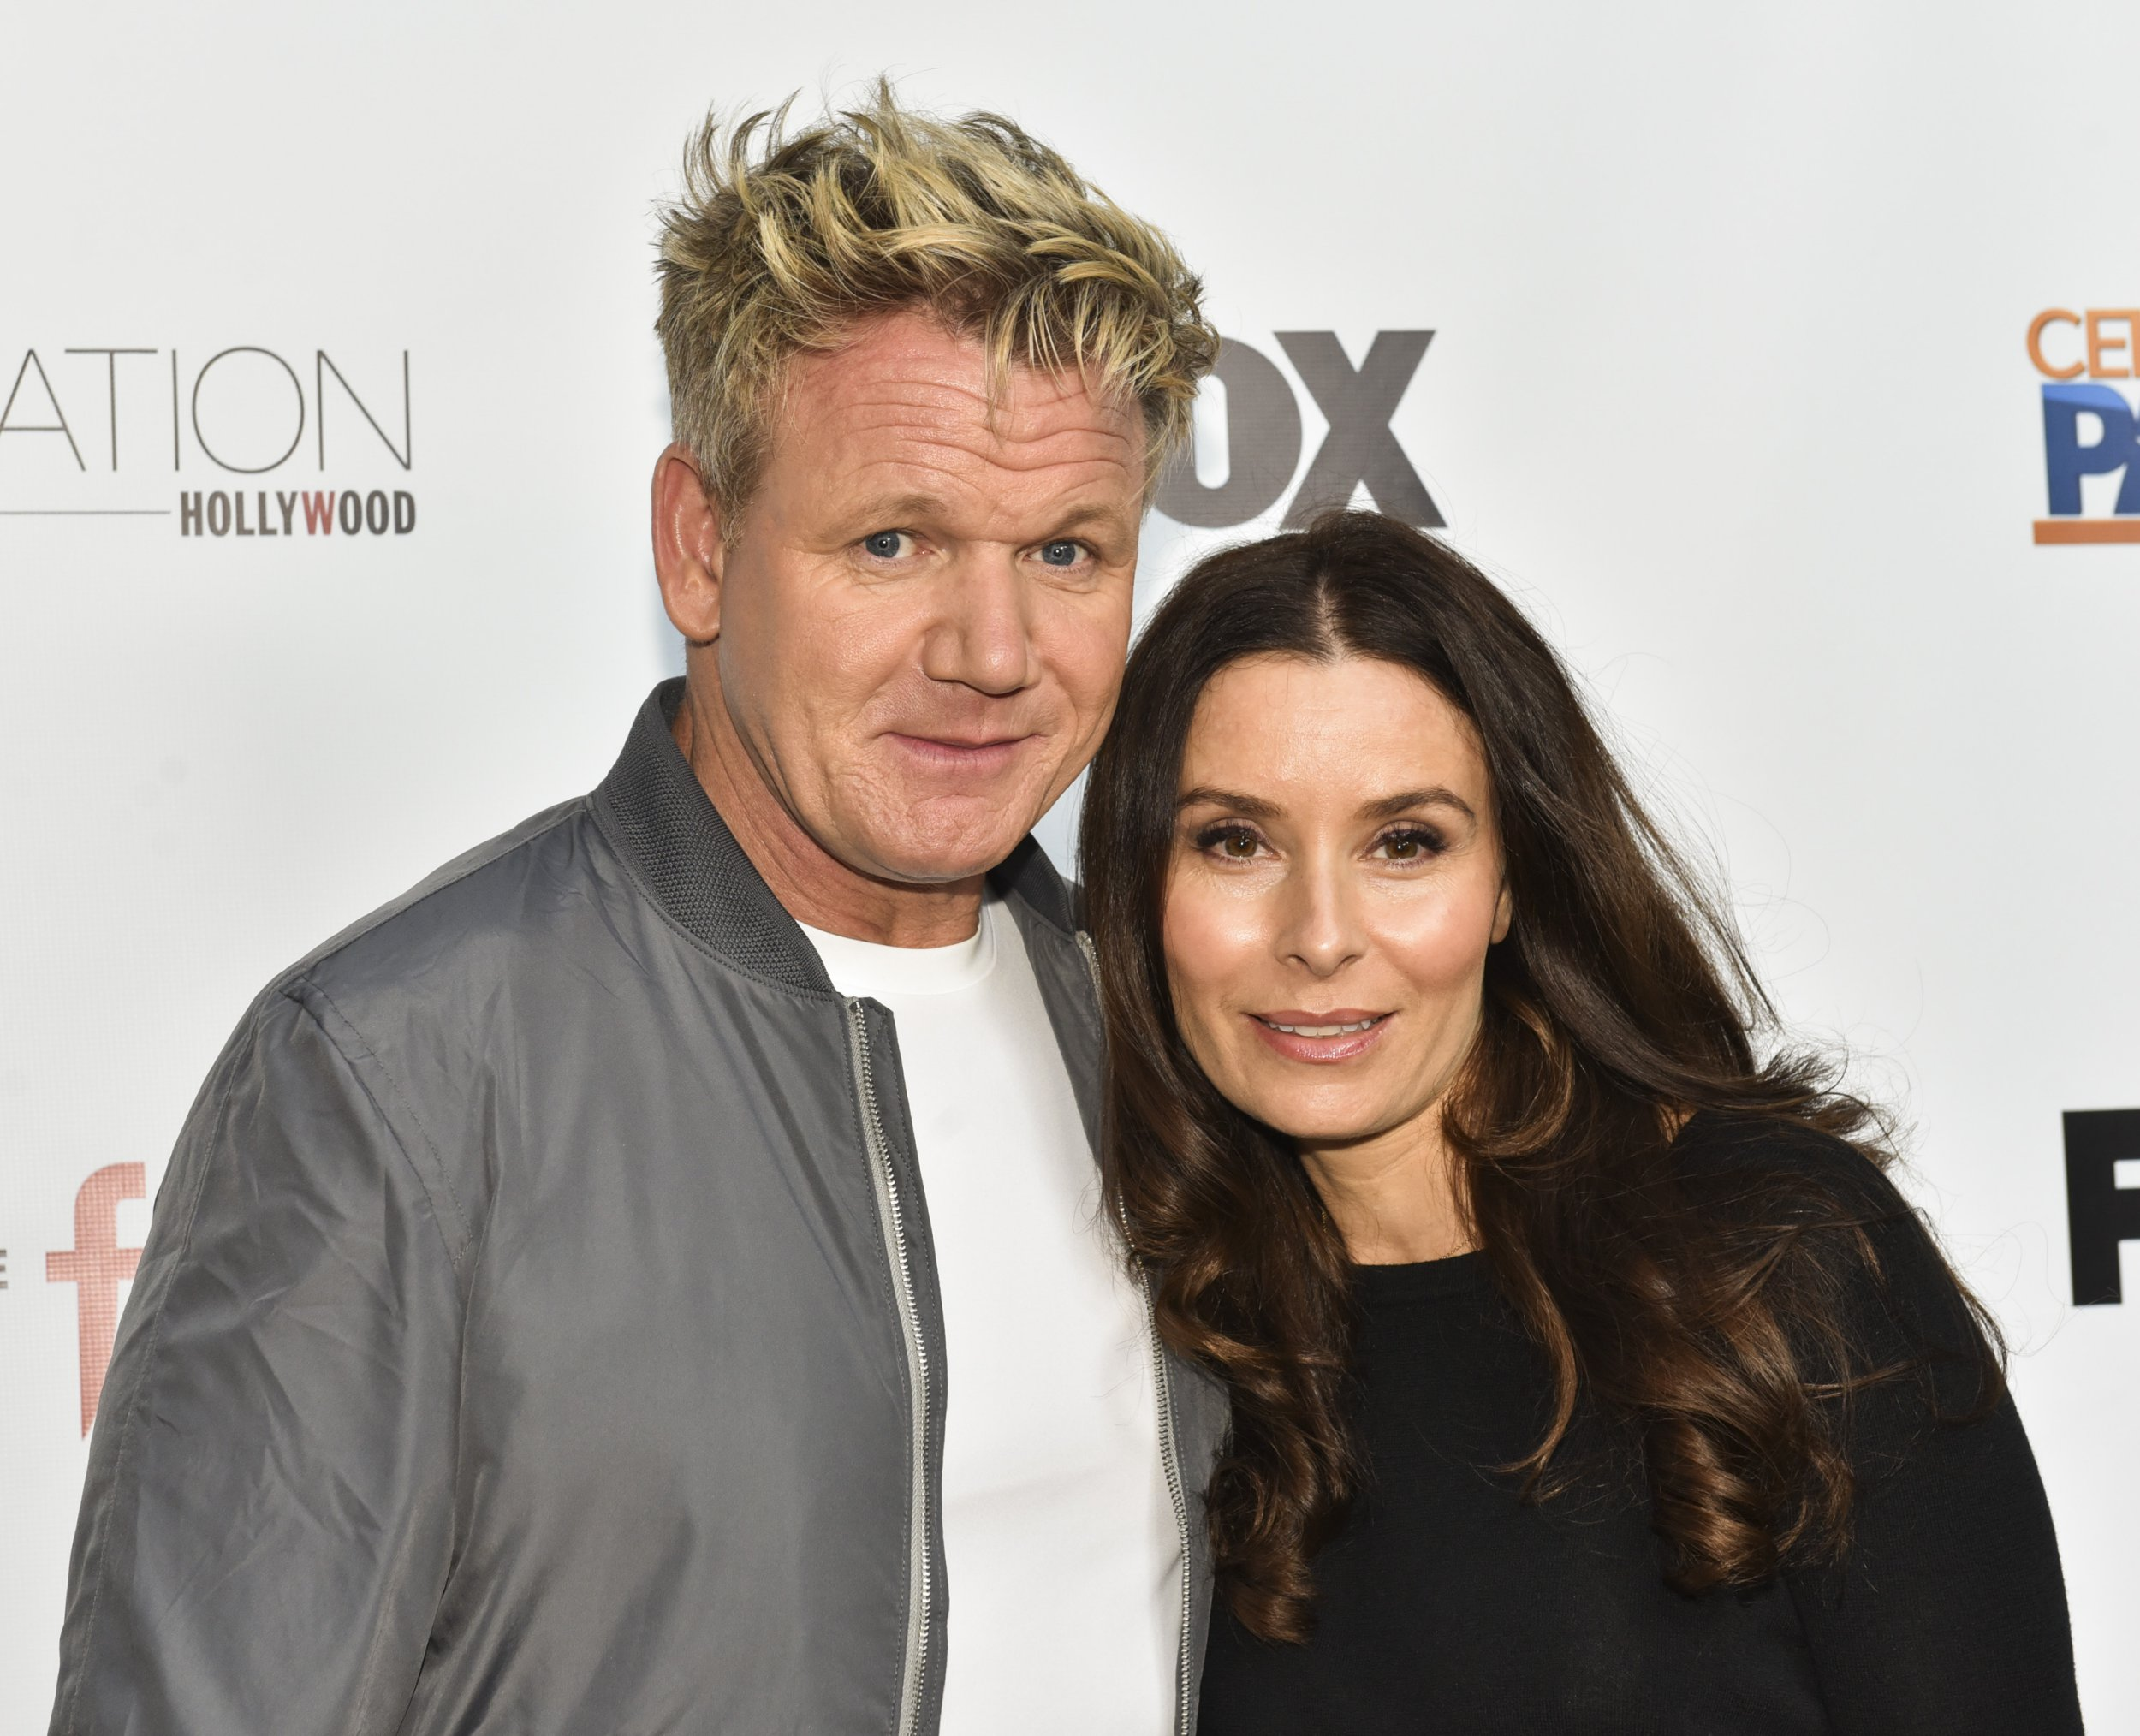 """HOLLYWOOD, CA - MAY 22: Celebrity chef Gordon Ramsay (L) and Tana Ramsay attend """"The F Word"""" celebration at Station Hollywood at W Hollywood Hotel on May 22, 2017 in Hollywood, California. (Photo by Rodin Eckenroth/Getty Images)"""